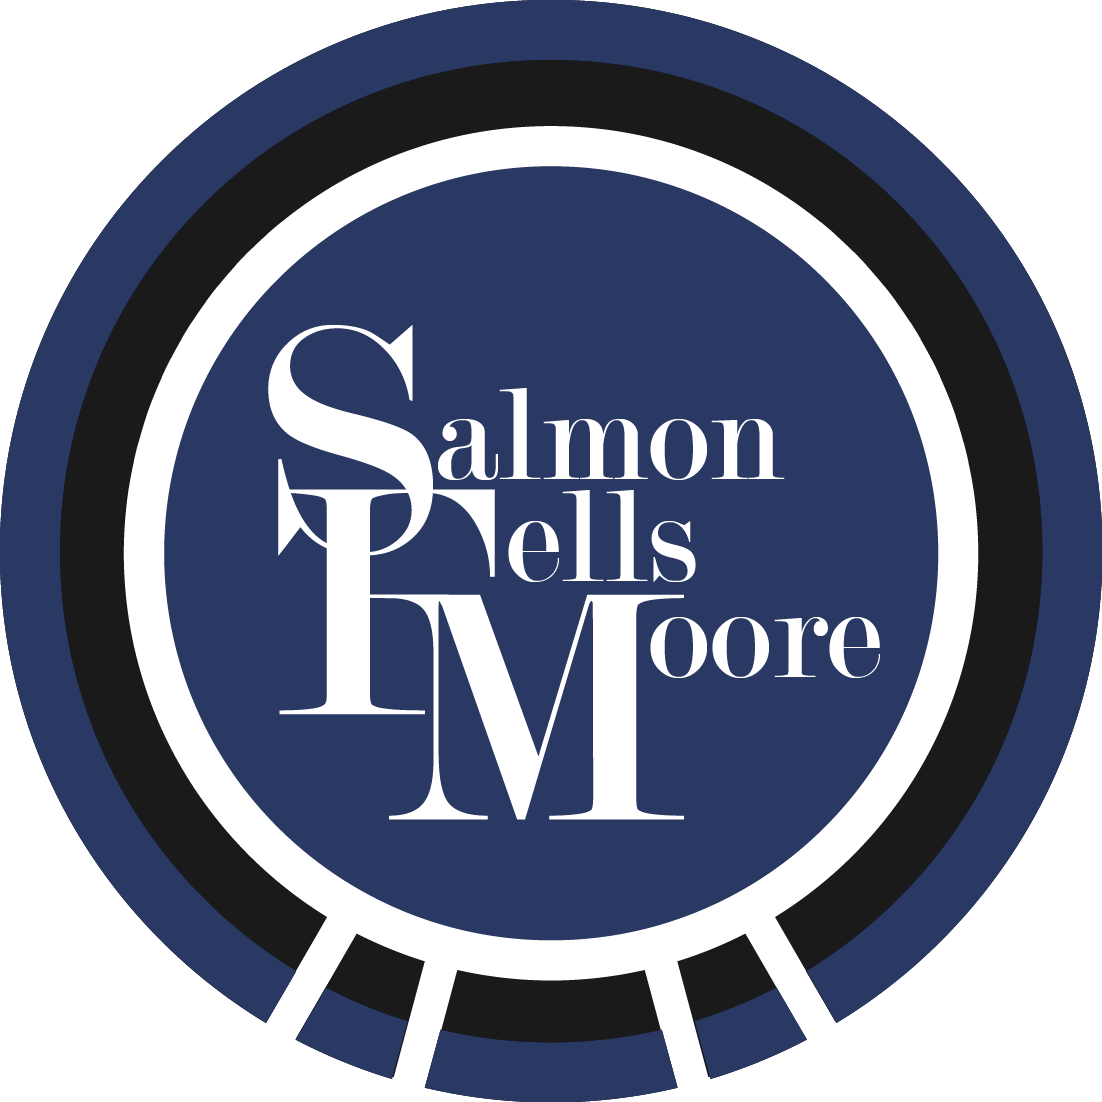 Salmon Fells Moore